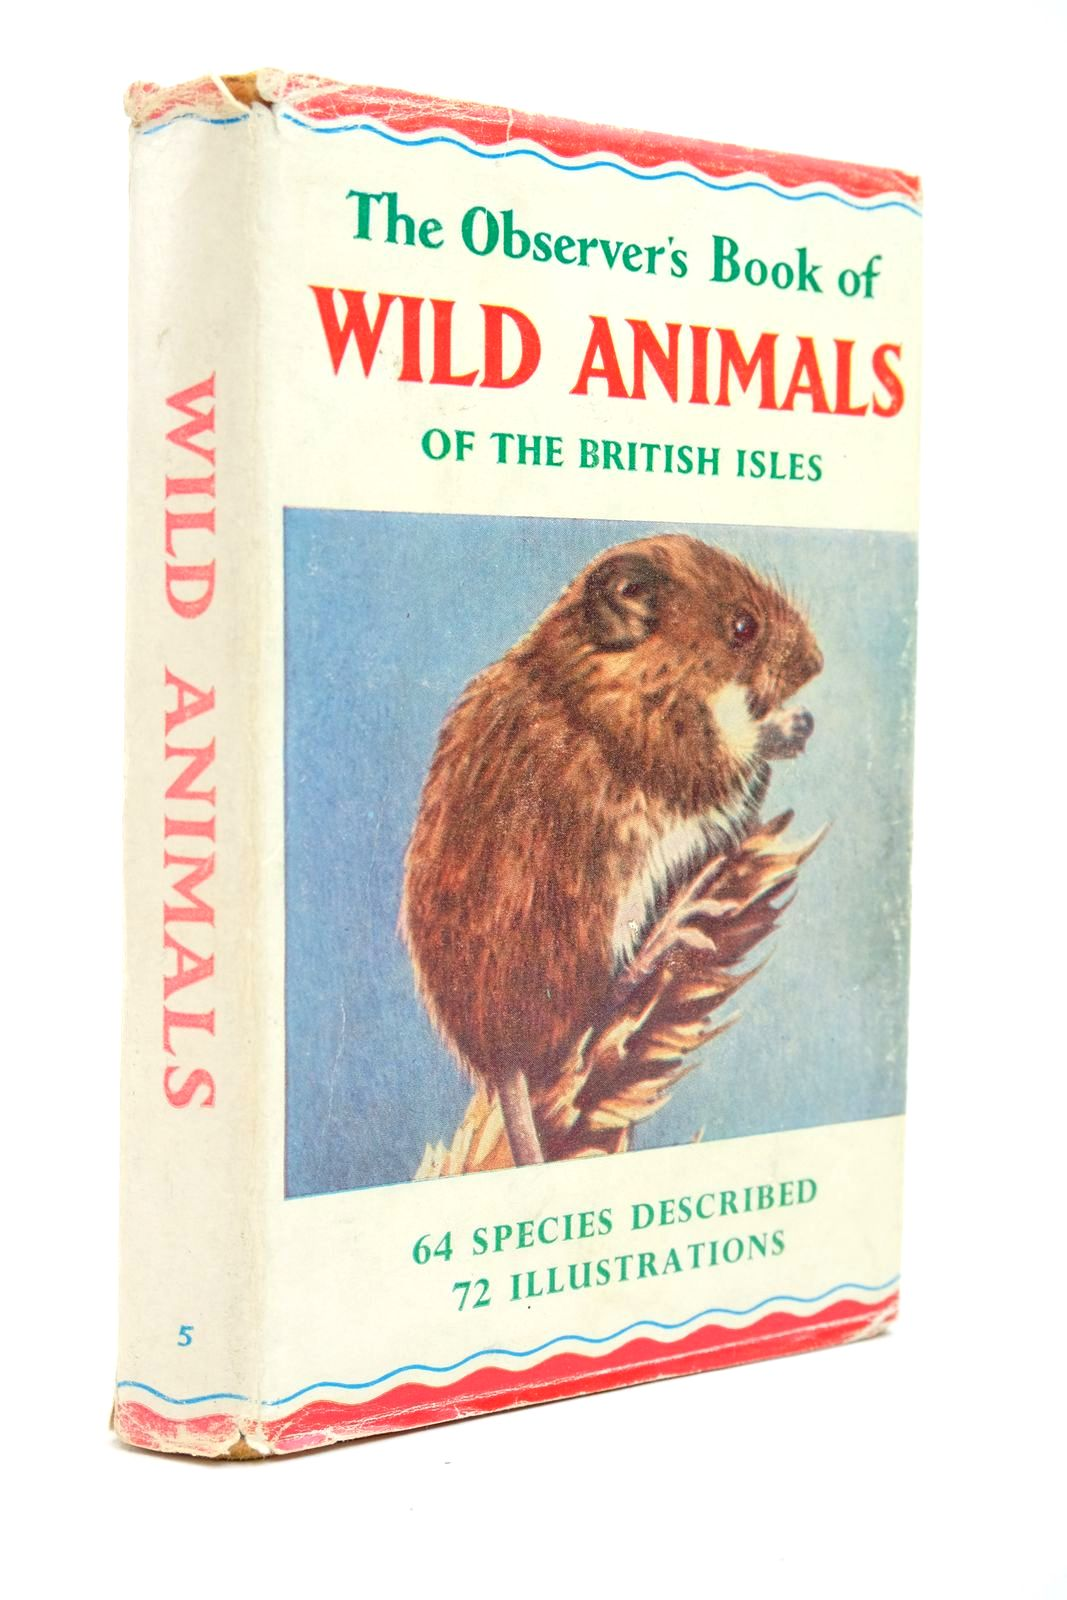 Photo of THE OBSERVER'S BOOK OF WILD ANIMALS OF THE BRITISH ISLES written by Stokoe, W.J. Burton, Maurice published by Frederick Warne & Co Ltd. (STOCK CODE: 2134675)  for sale by Stella & Rose's Books